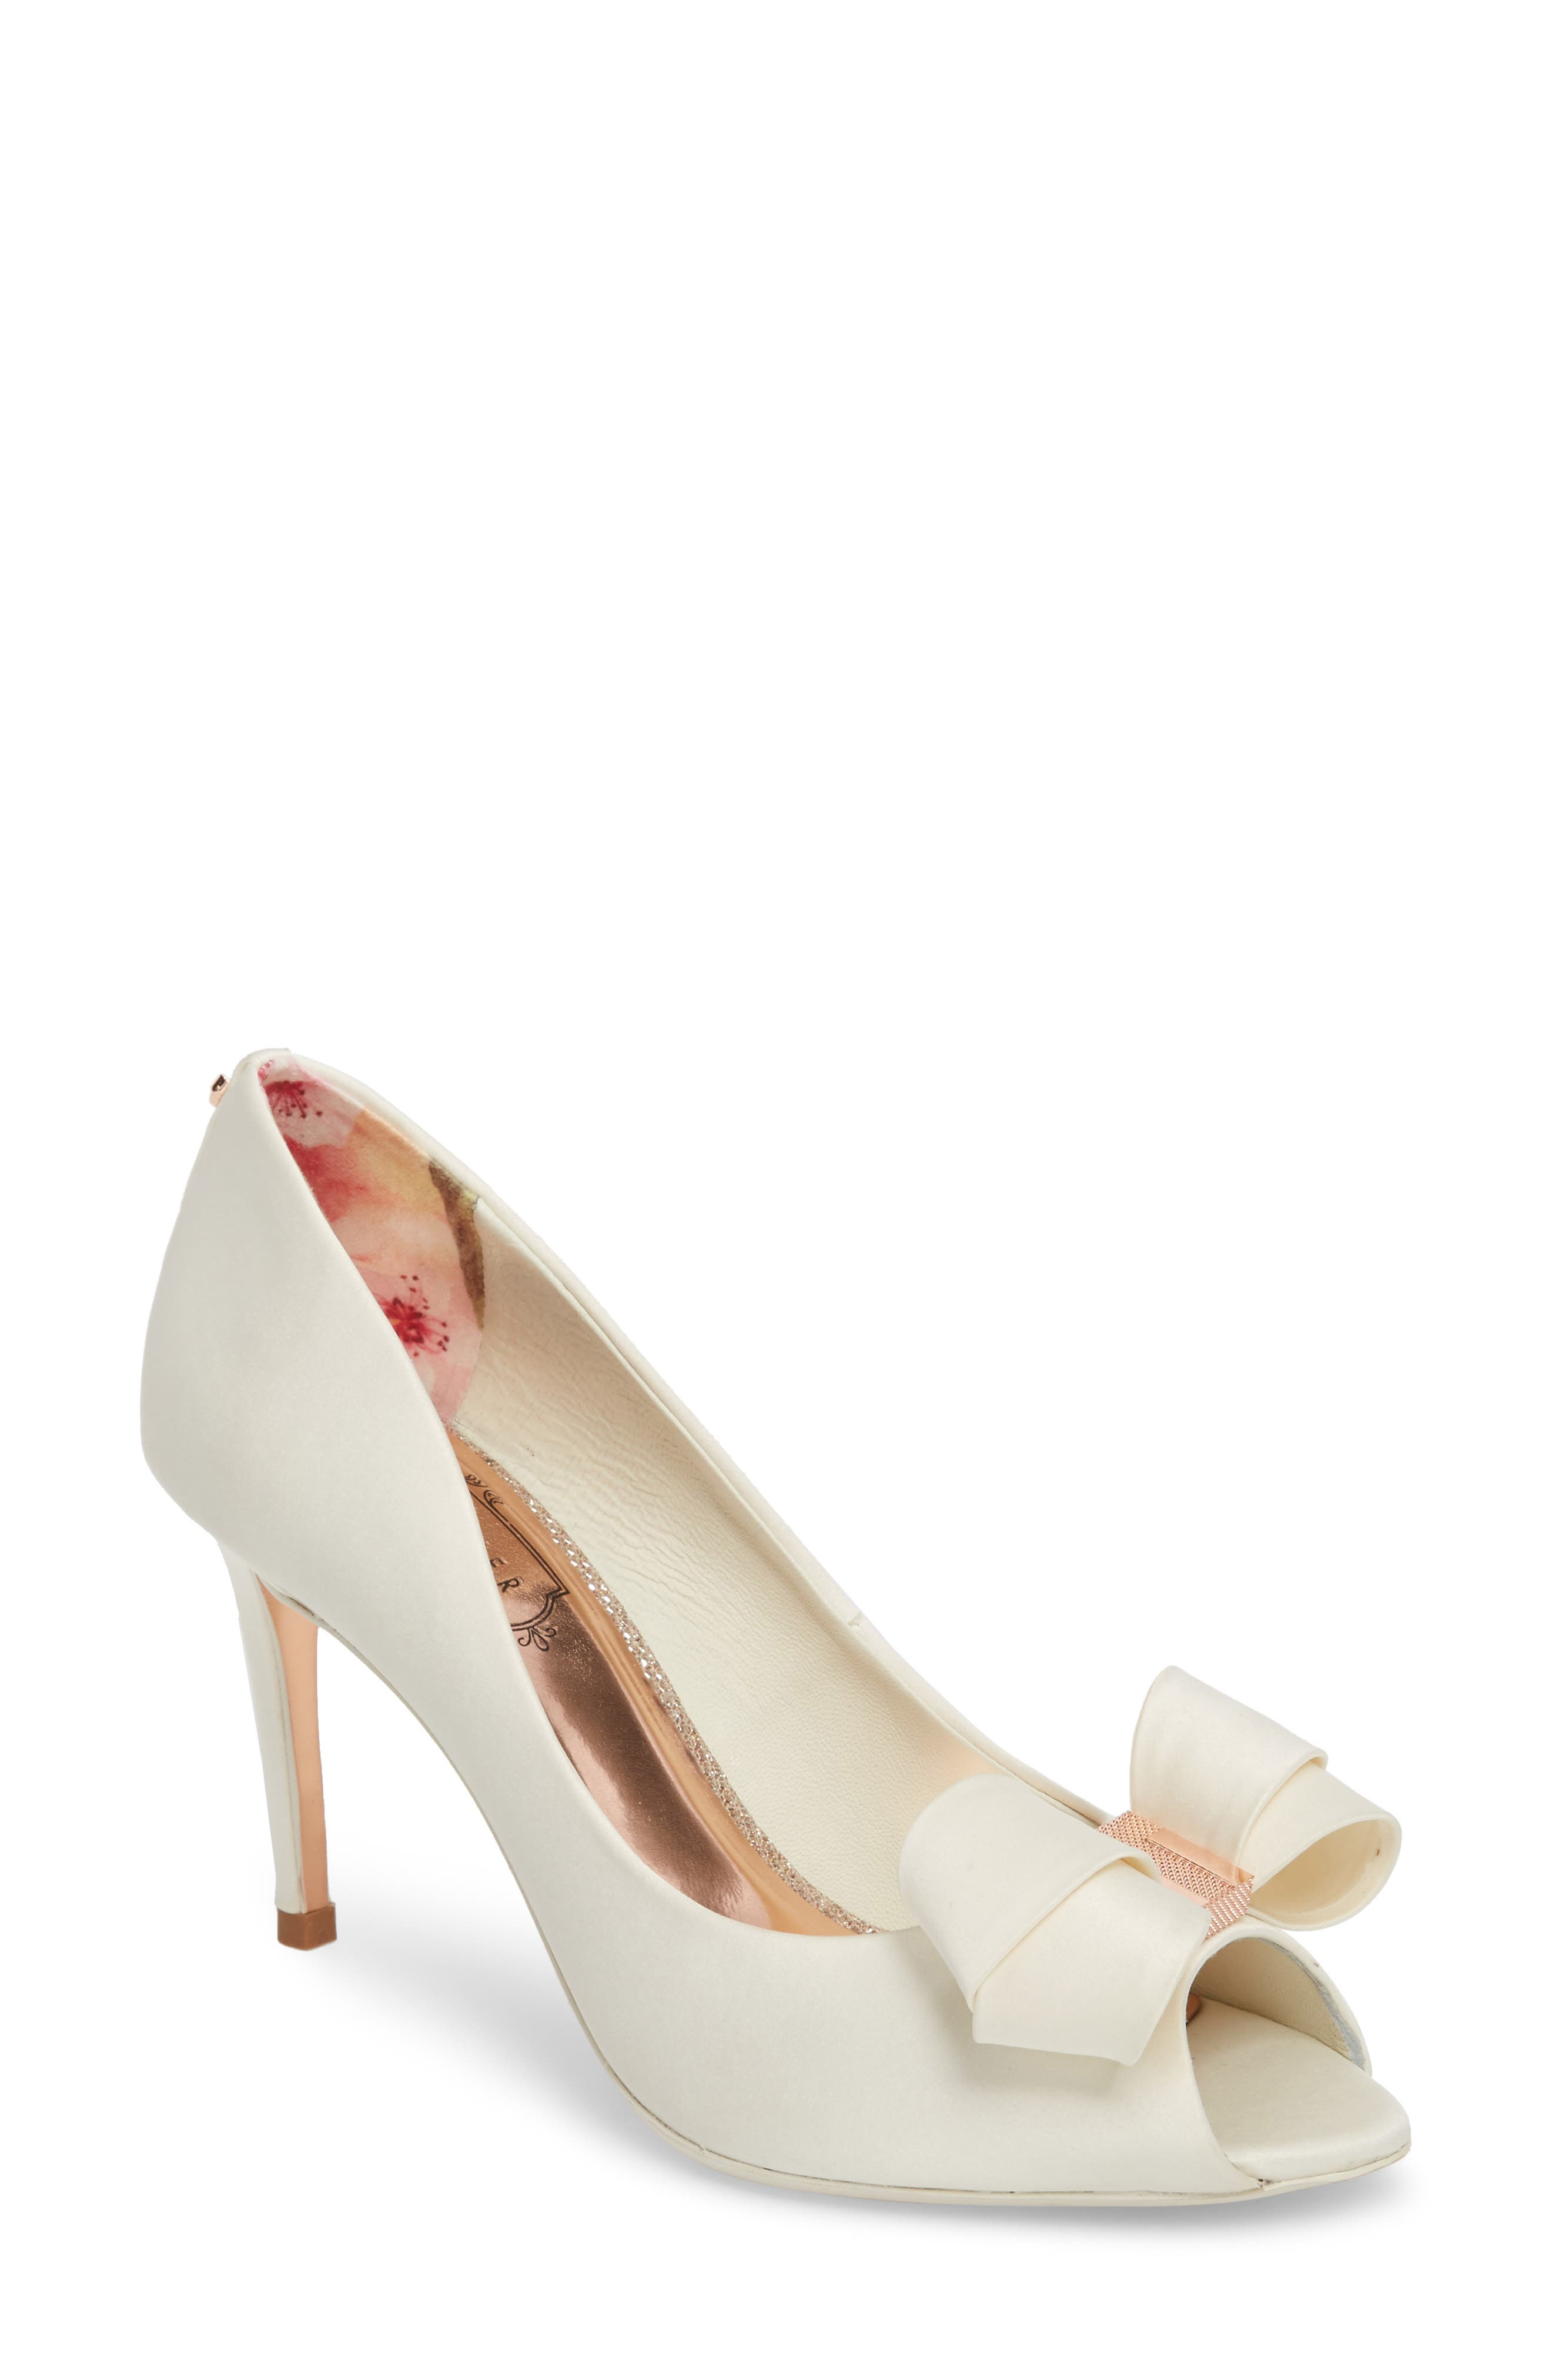 Alternate Image 1 Selected - Ted Baker London Vylett Peep Toe Pump (Women)